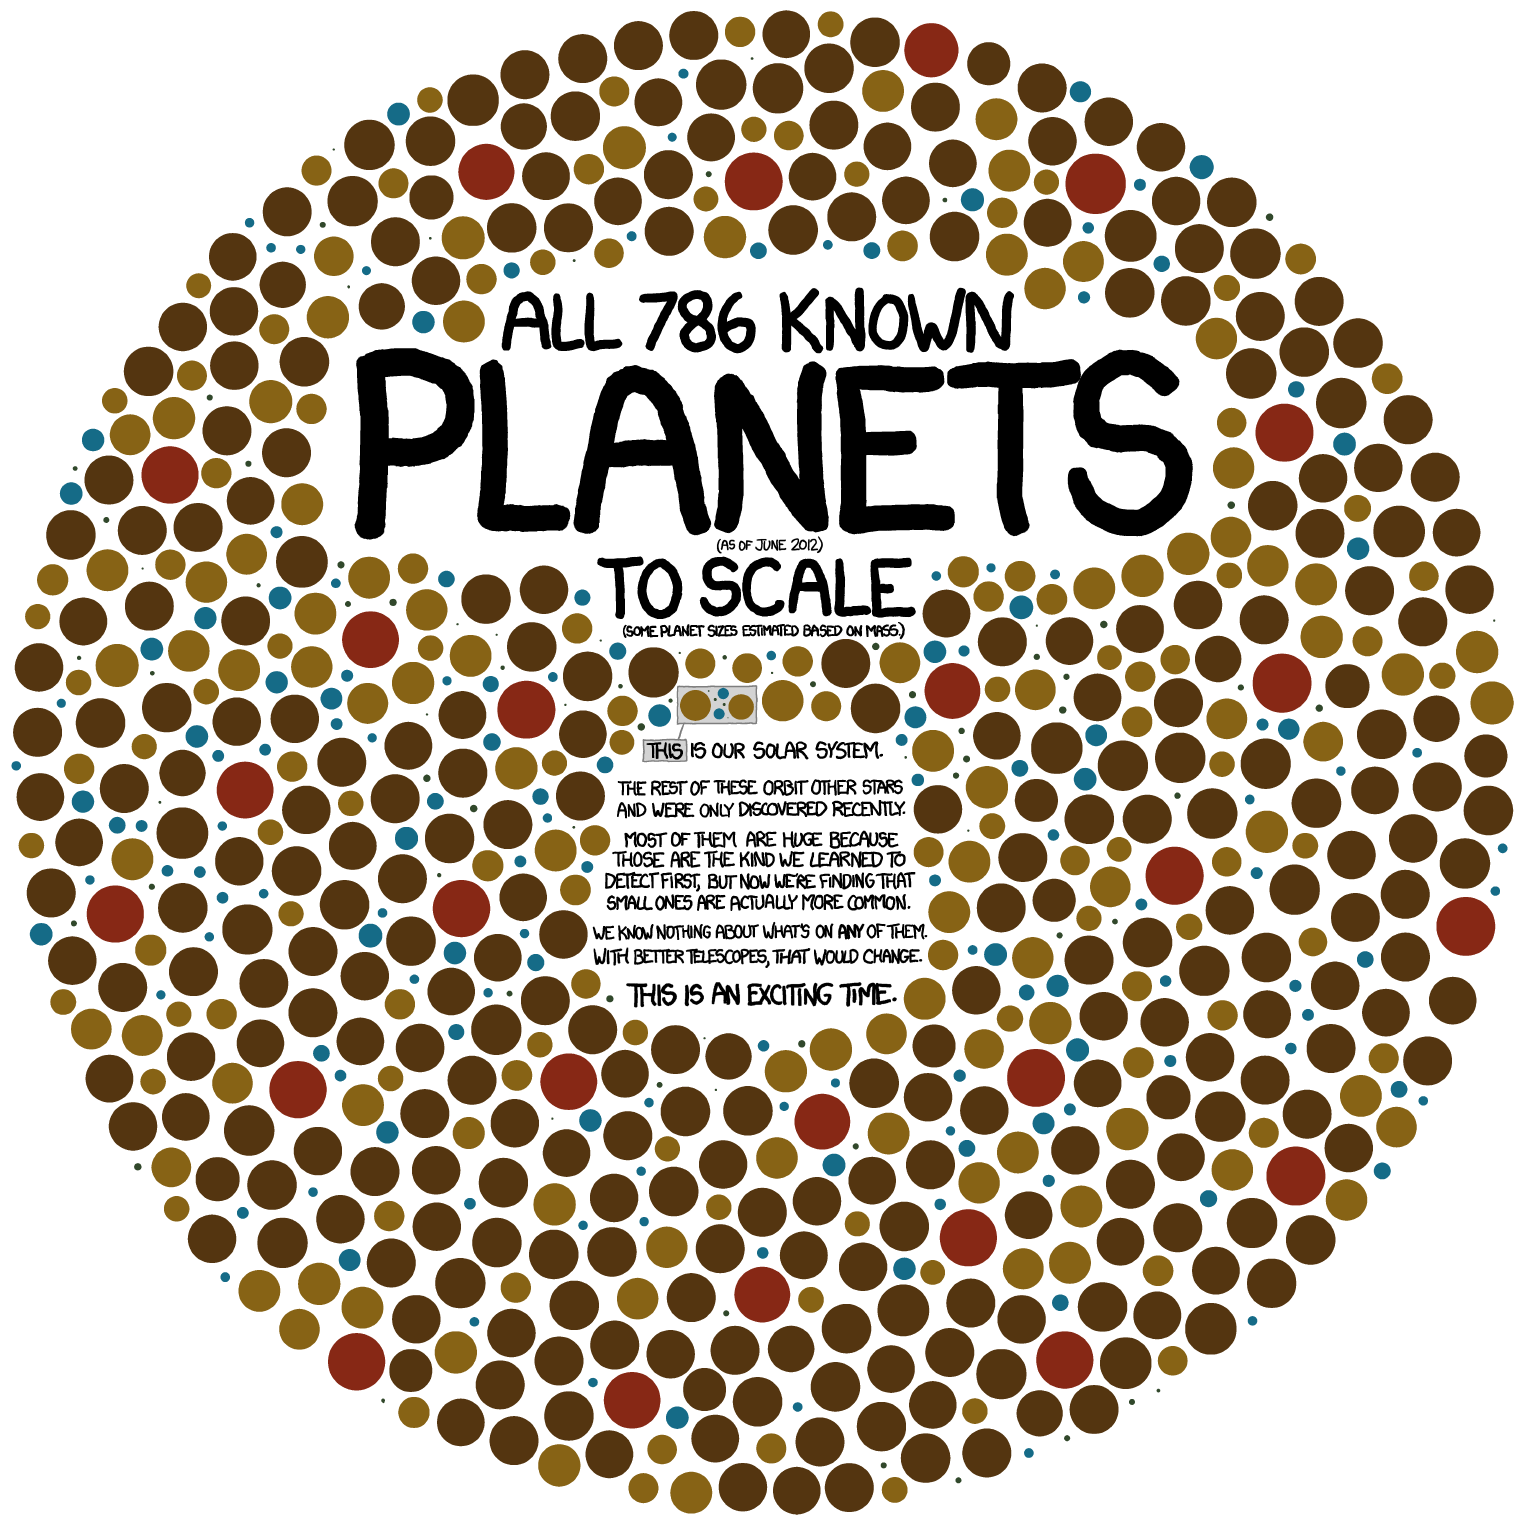 All 786 confirmed planets in one handy infographic